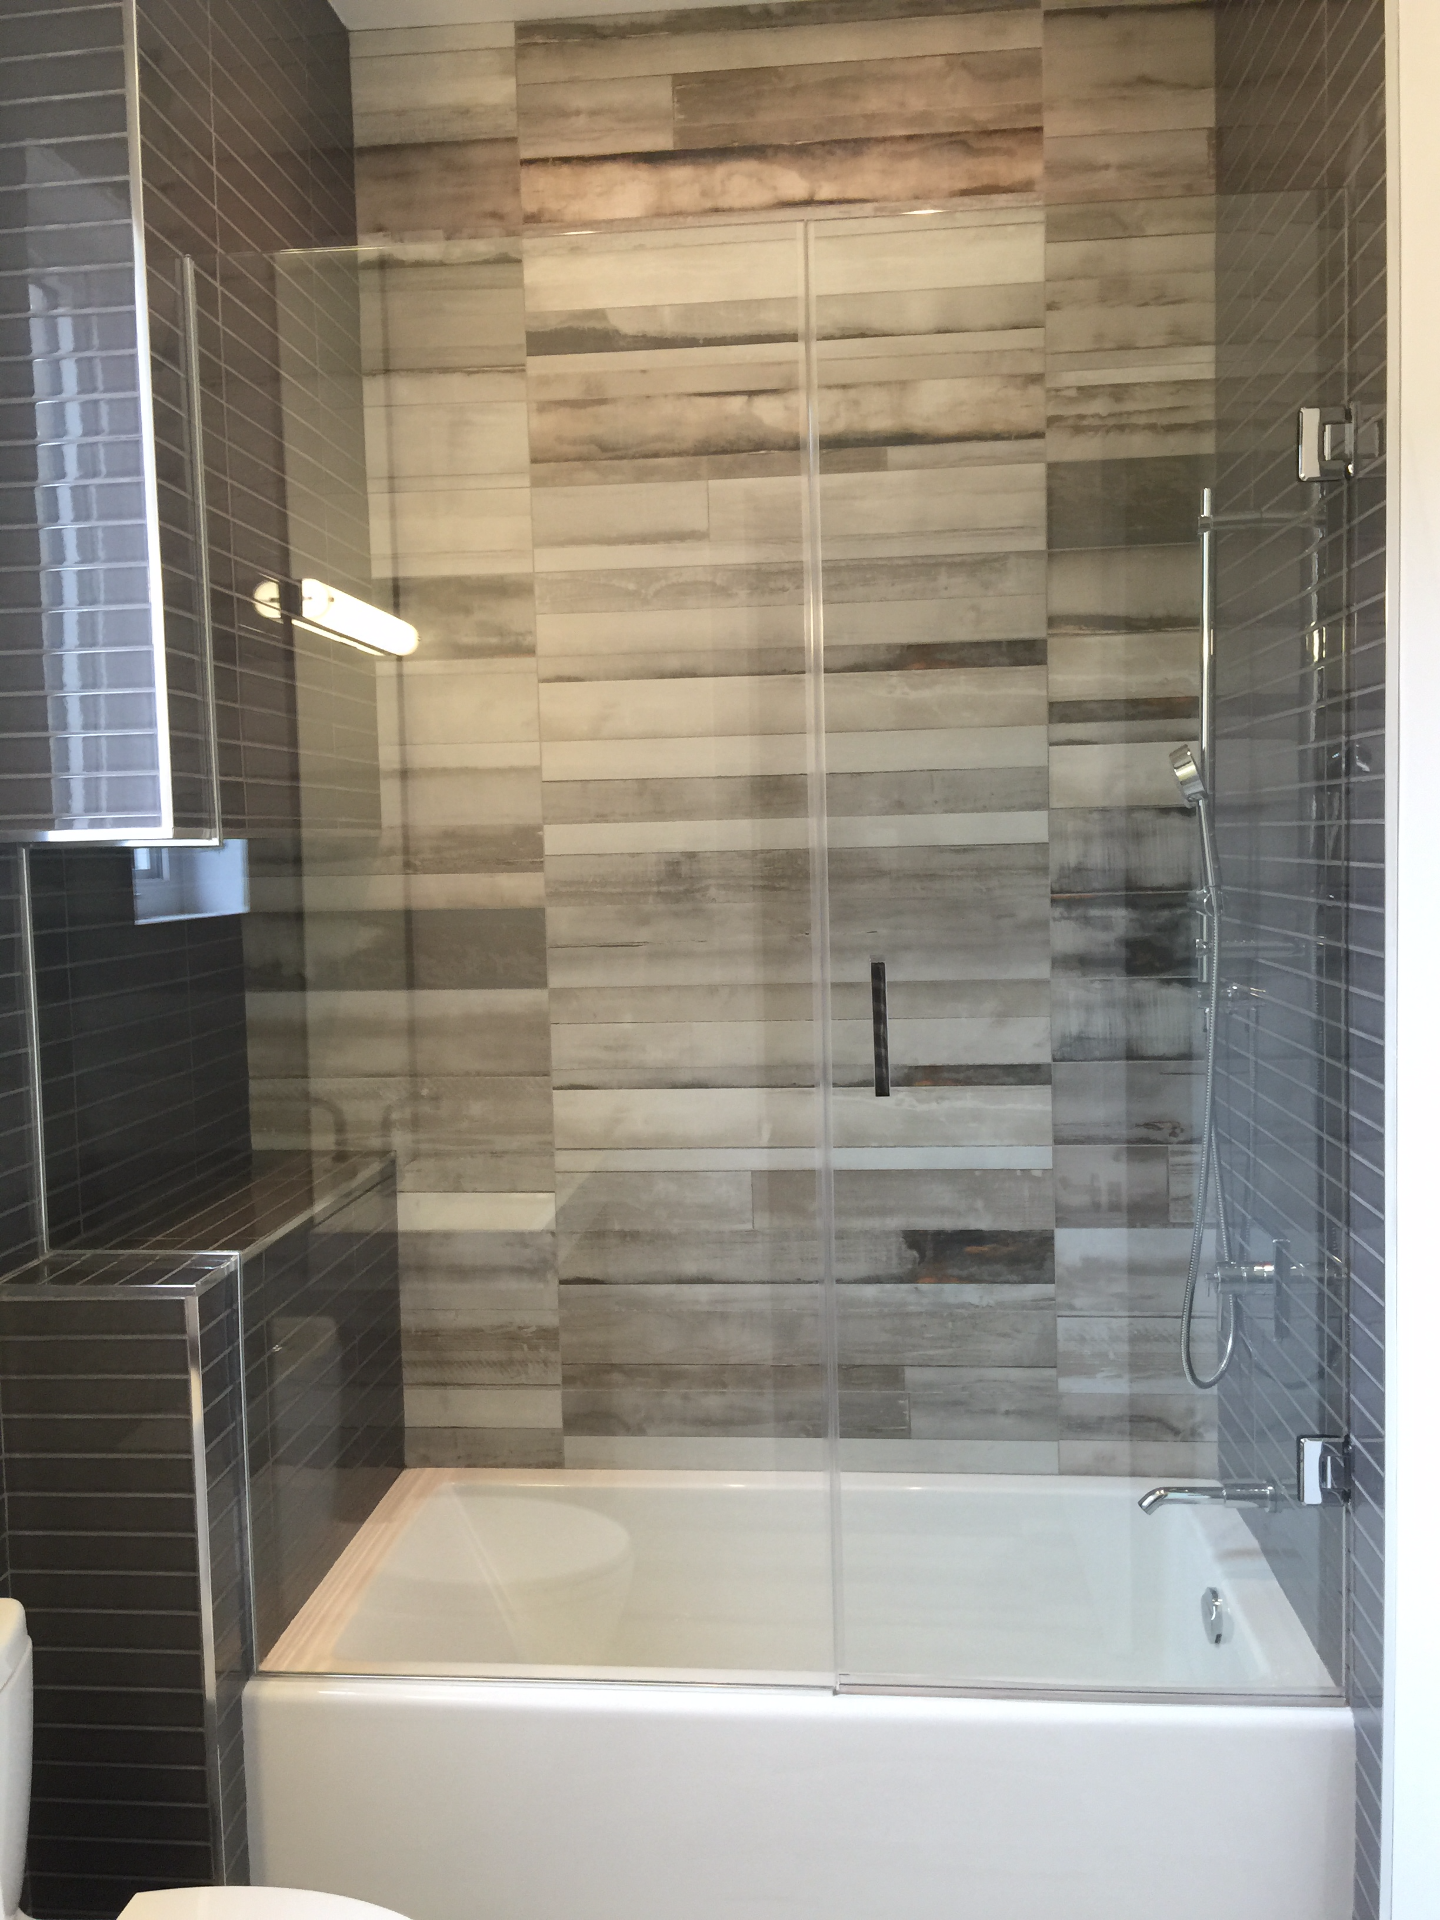 BATH TUB SHOWER ENCLOSURE